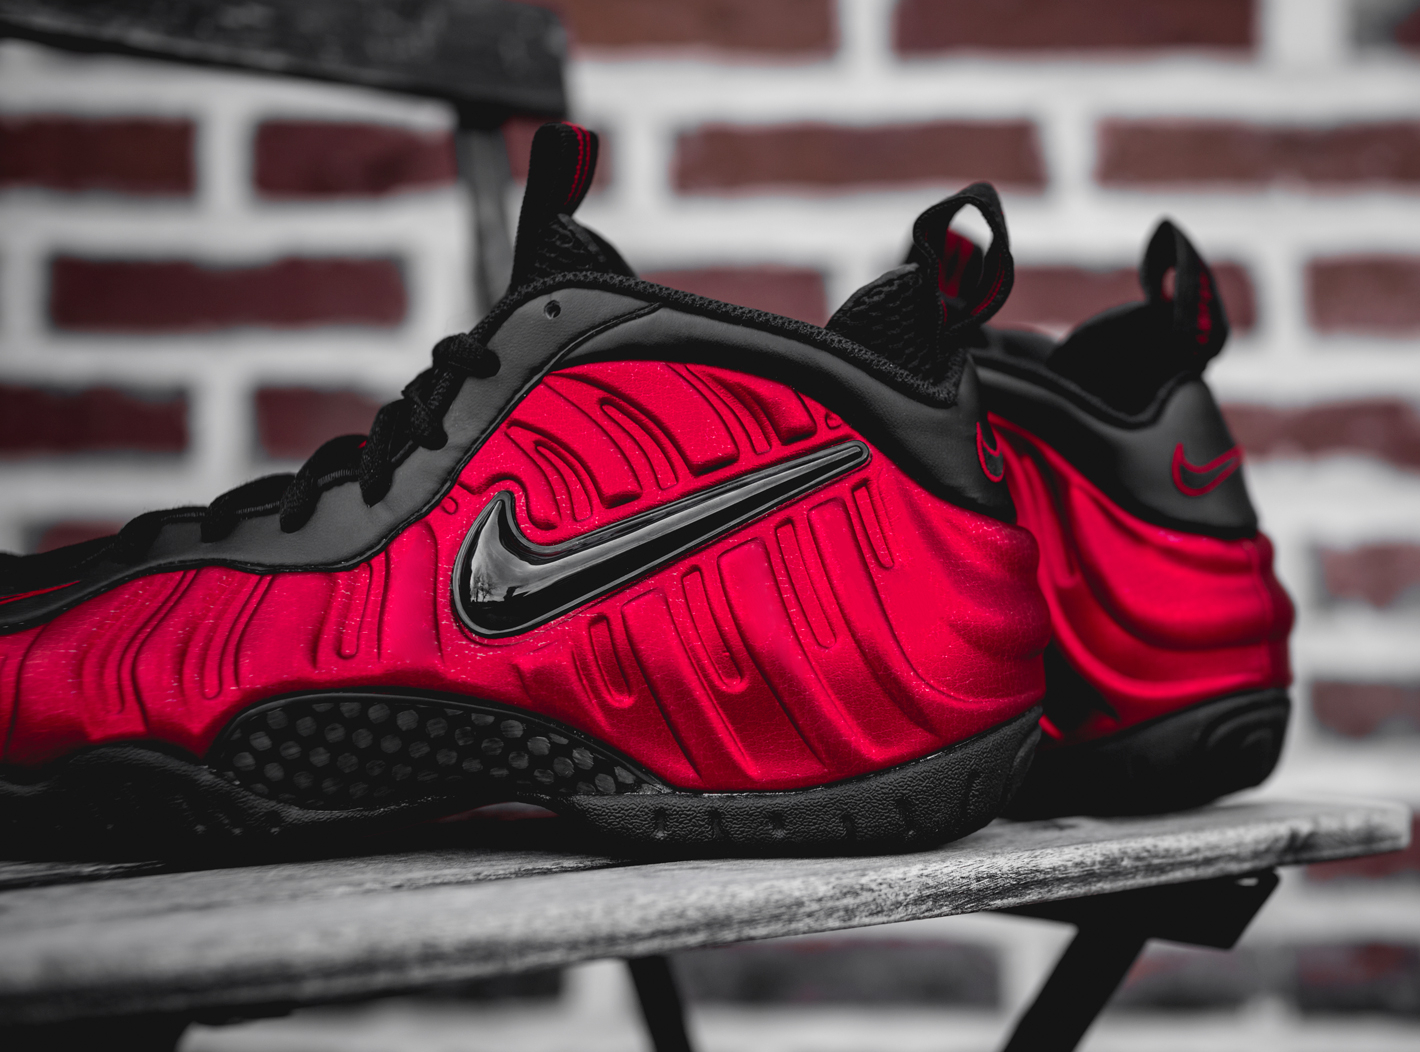 Chaussure Nike Air Foamposite Pro 'University Red' (4)